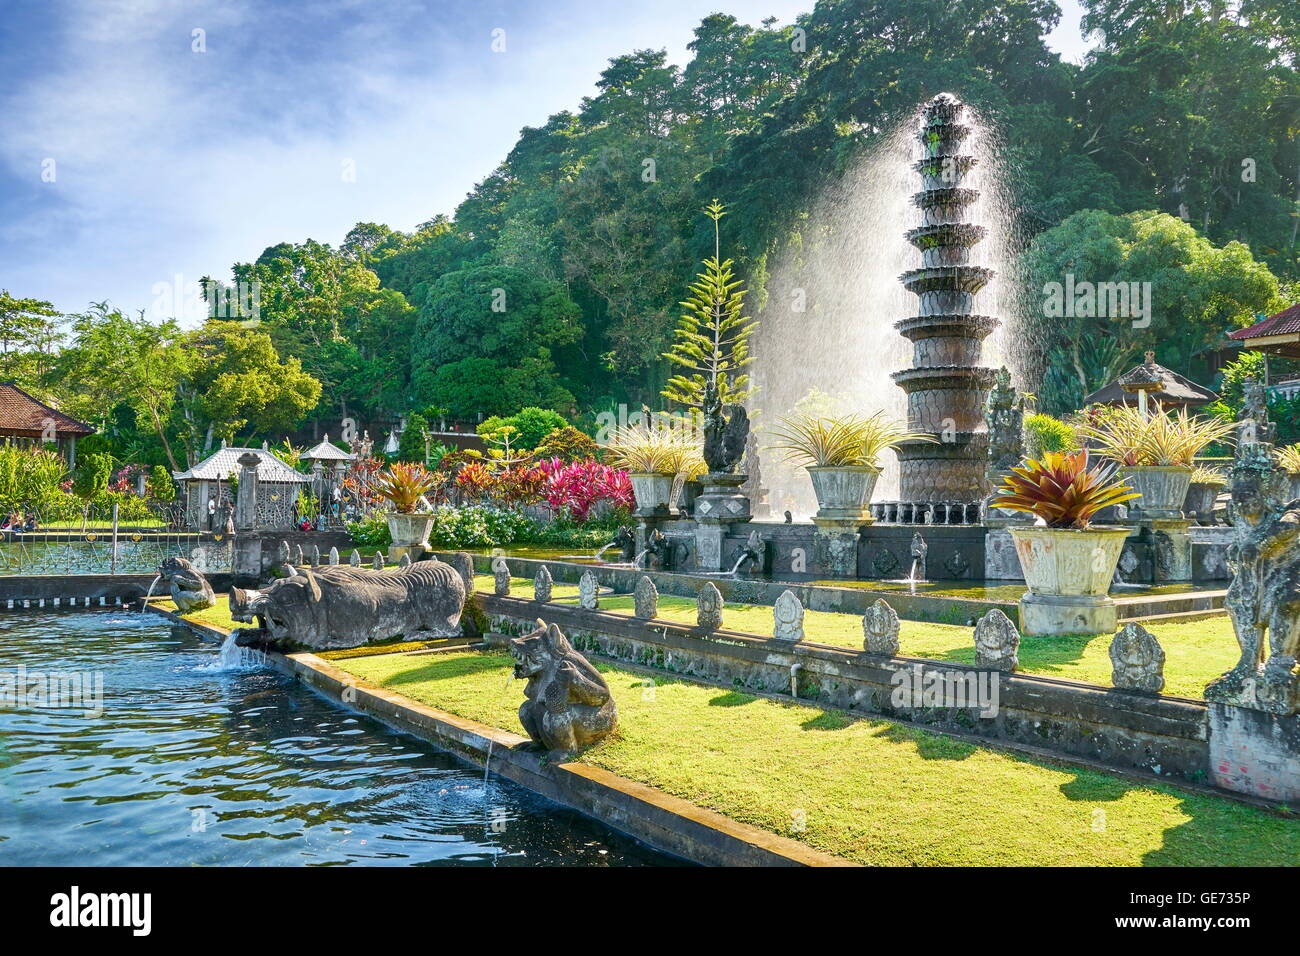 Tirta Gangga Royal Water Garden: Balinese Garden Stock Photos & Balinese Garden Stock